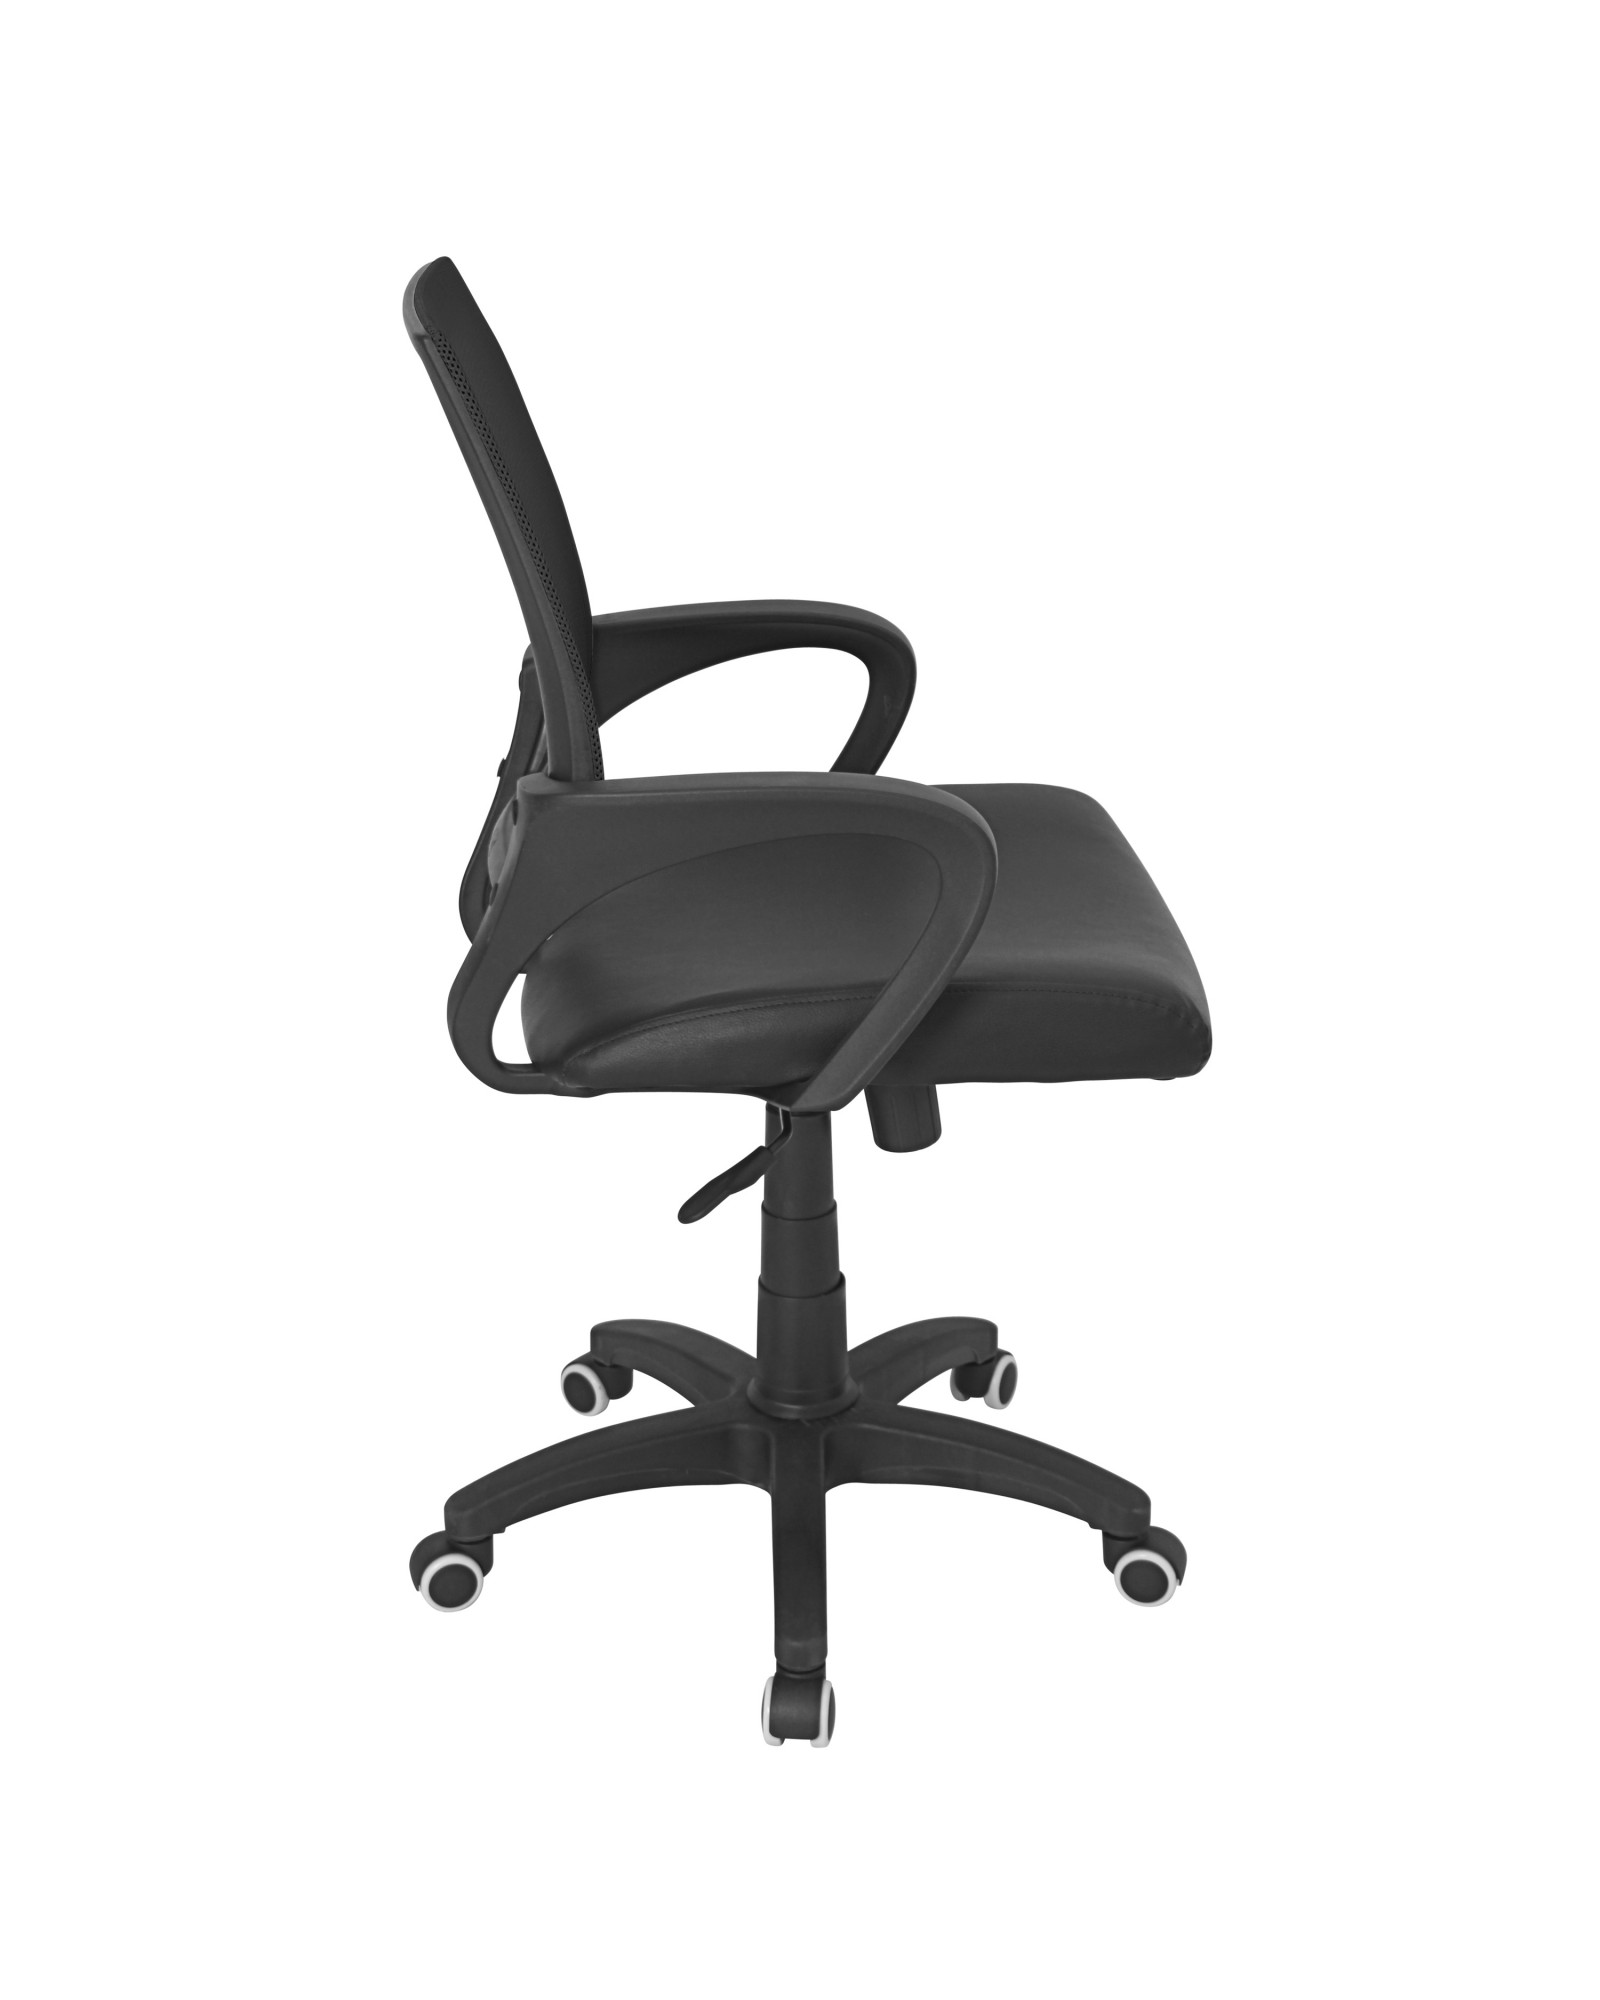 Officer Modern Adjustable Office Chair with Swivel in Black